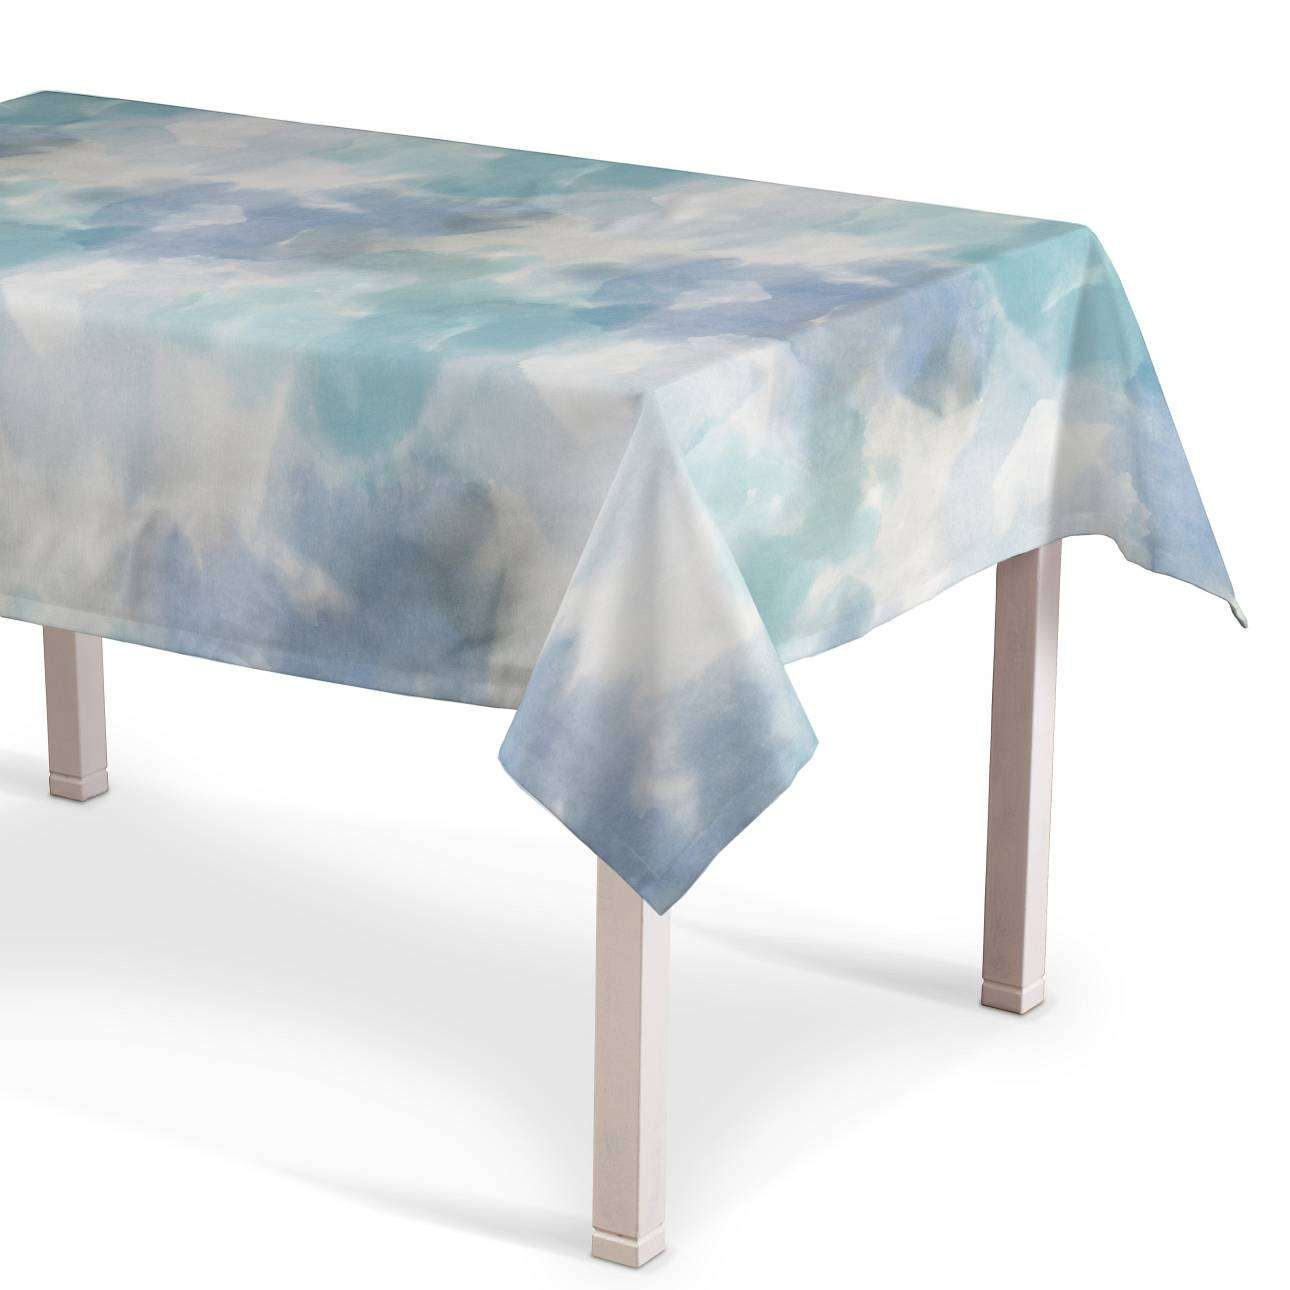 Rectangular tablecloth 130 × 130 cm (51 x51 inch) in collection Aquarelle, fabric: 140-67